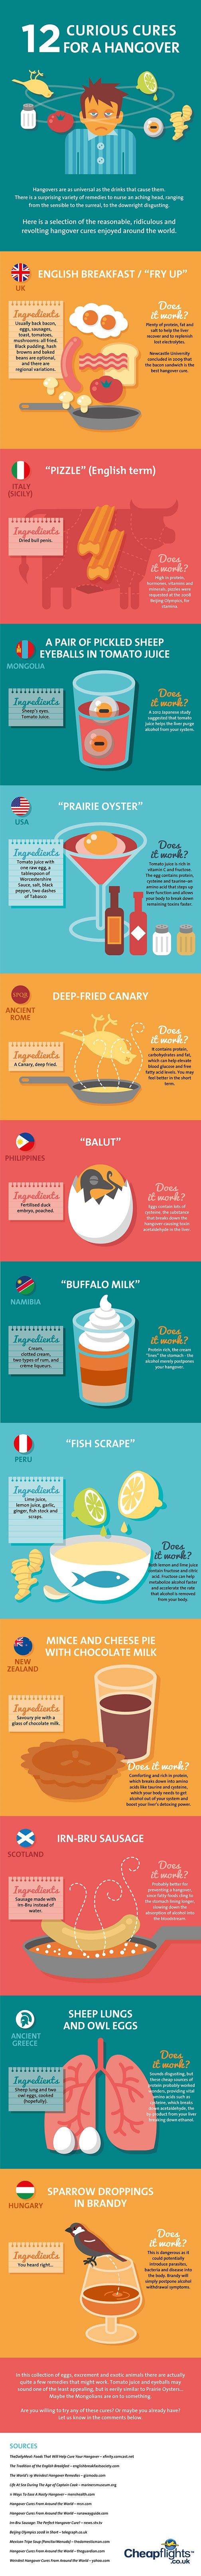 Hangover cures from around the world